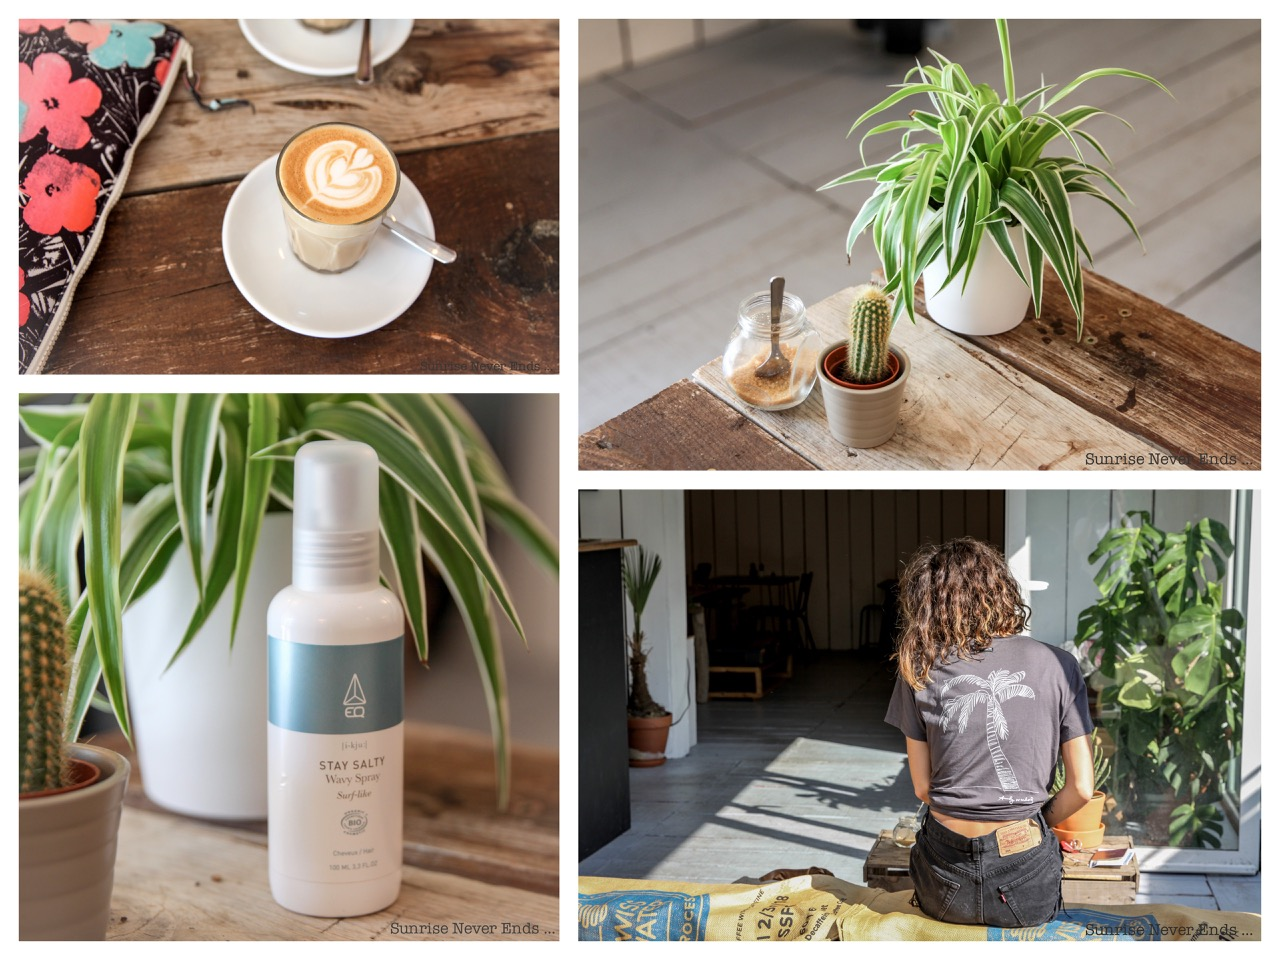 billabong women europe,warholsurf,andy warhol,waxed coffee,hossegor,eq,get salty,spray cheveux,produit de beauté,ines,mode